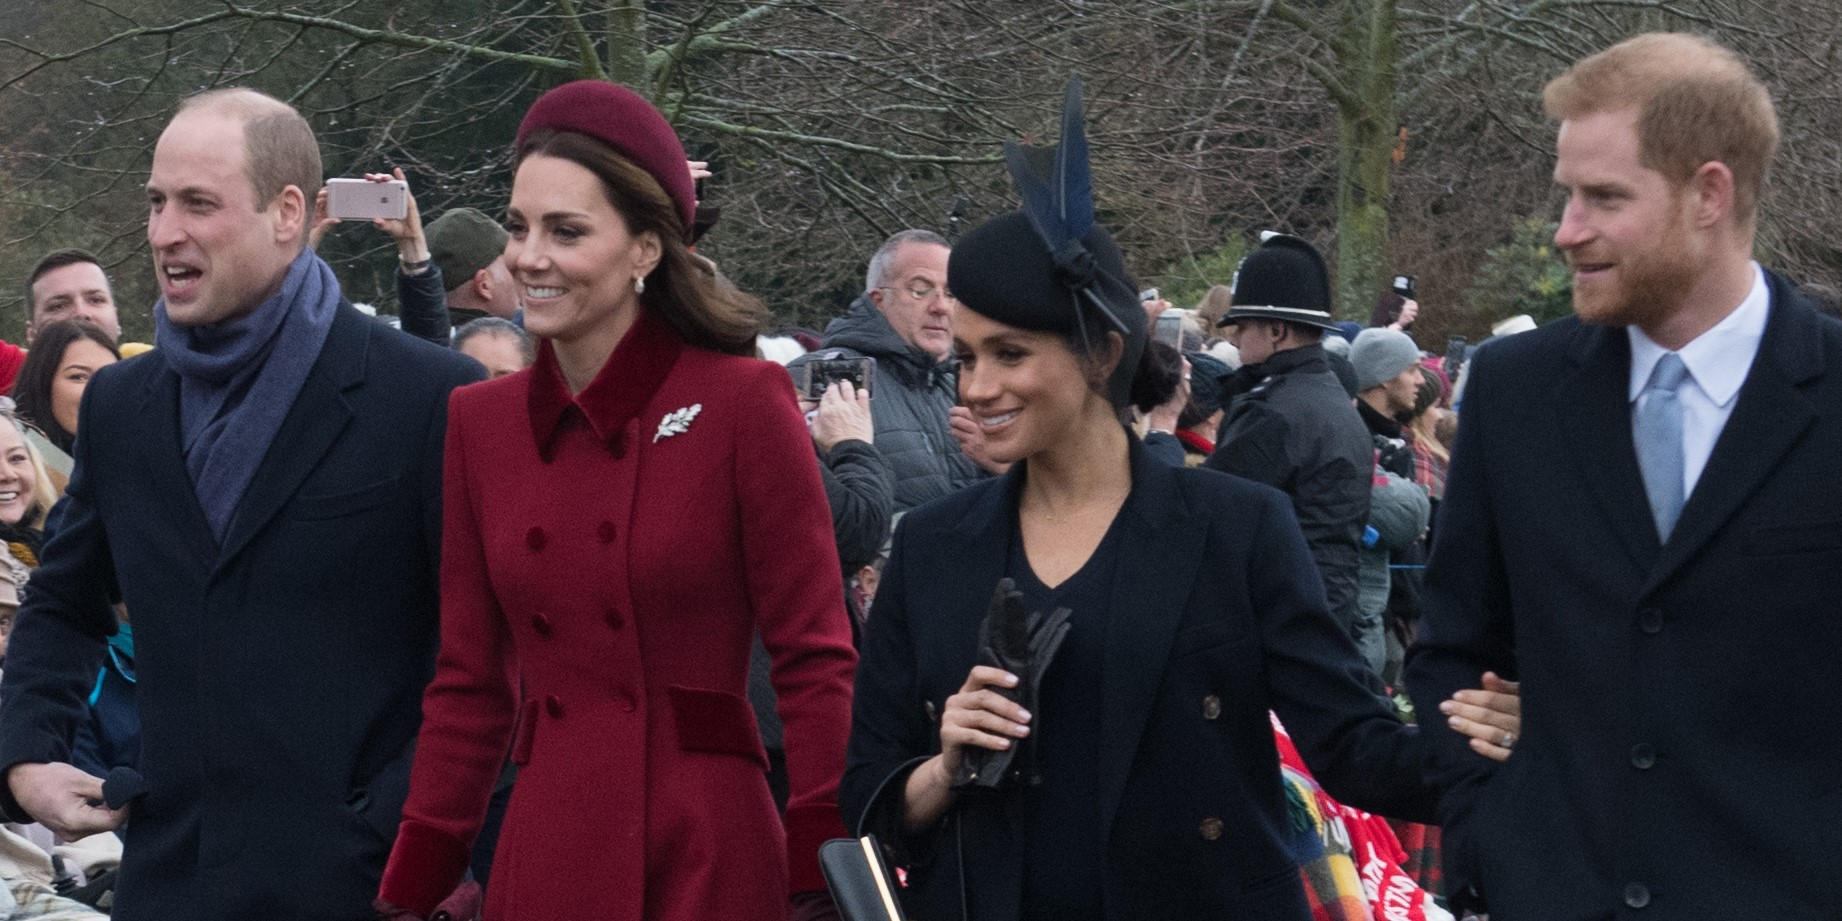 William and Kate share sweet birthday message to Meghan